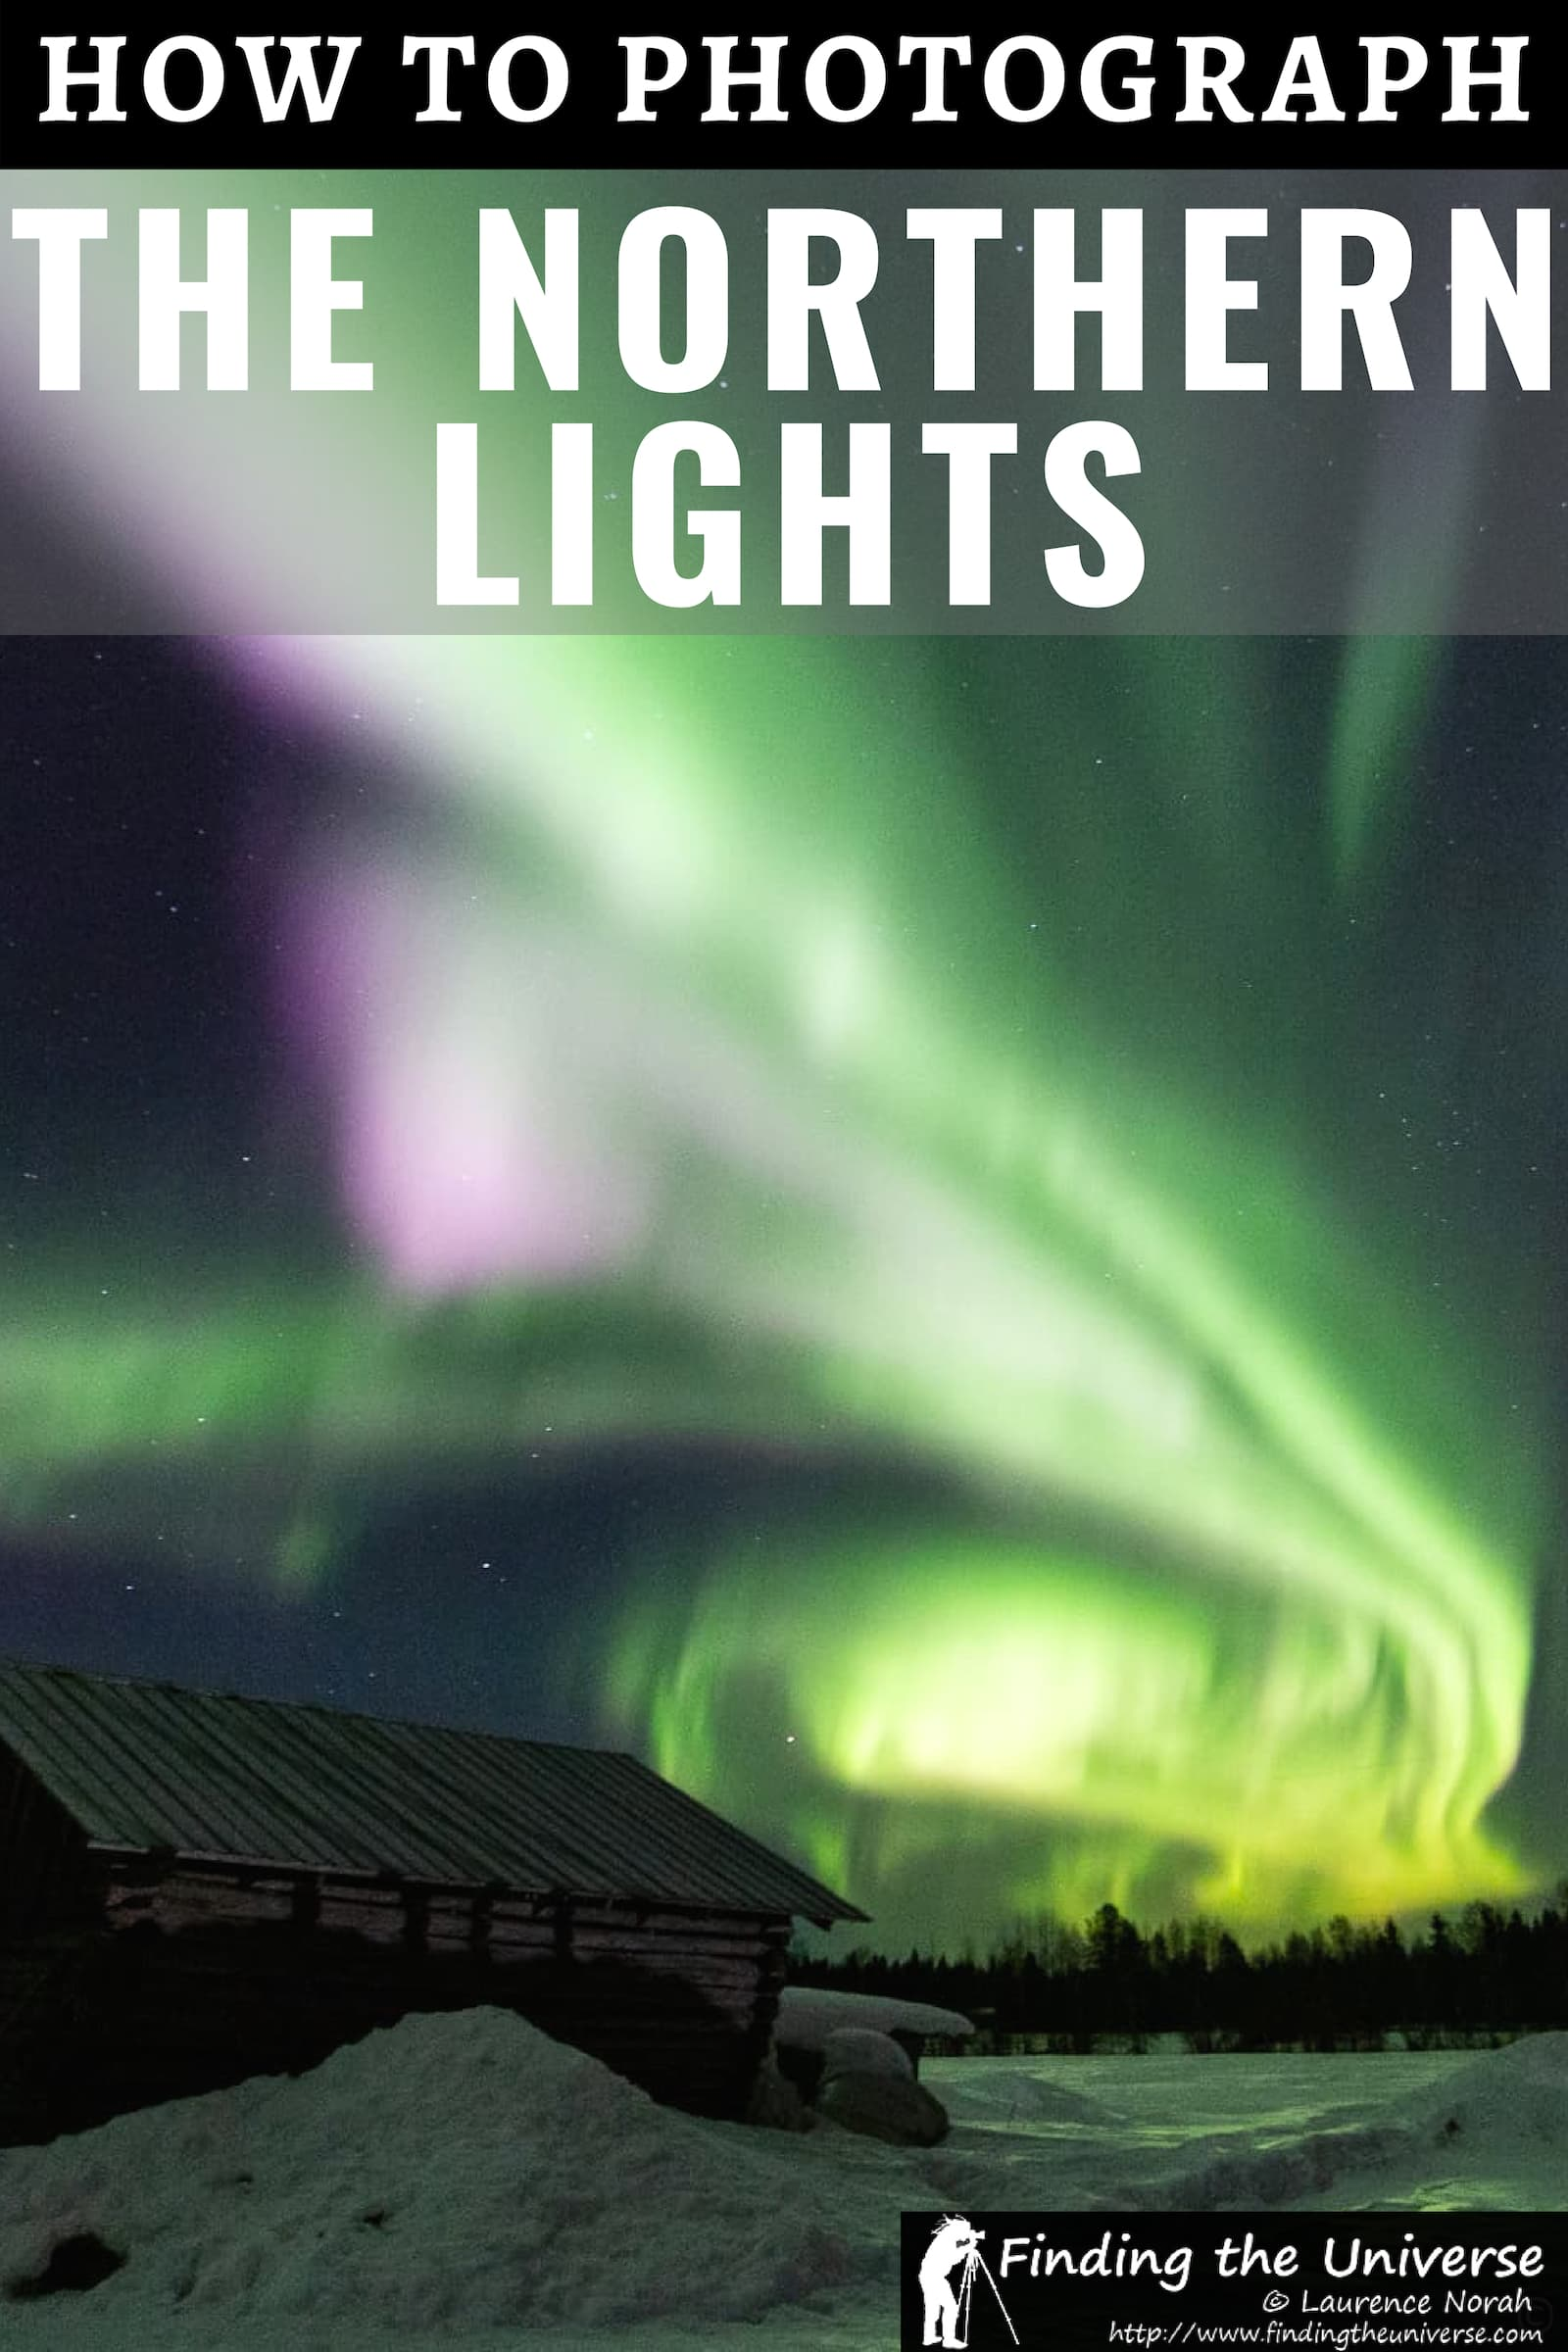 A detailed guide to how to photograph the Northern Lights, including tips on camera settings, camera equipment, how to find the Northern Lights and more!